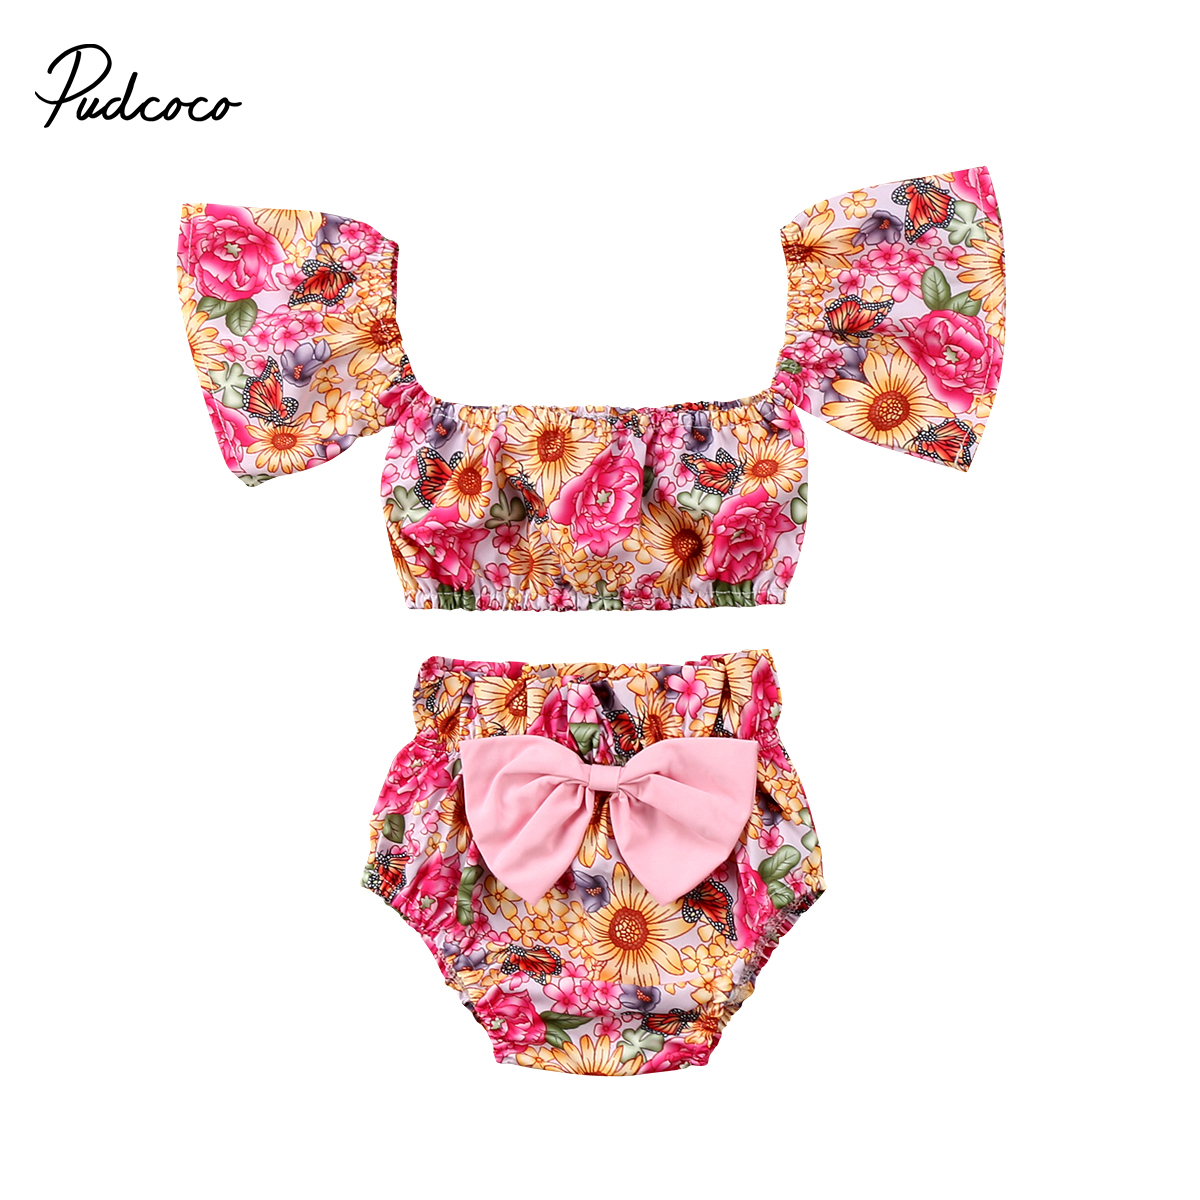 Pudcoco Newborn Baby Girls Clothes Floral Off shoulder Crop Tops T shirt+Bowknot Shorts Outfits Summer Infant Girl Clothing